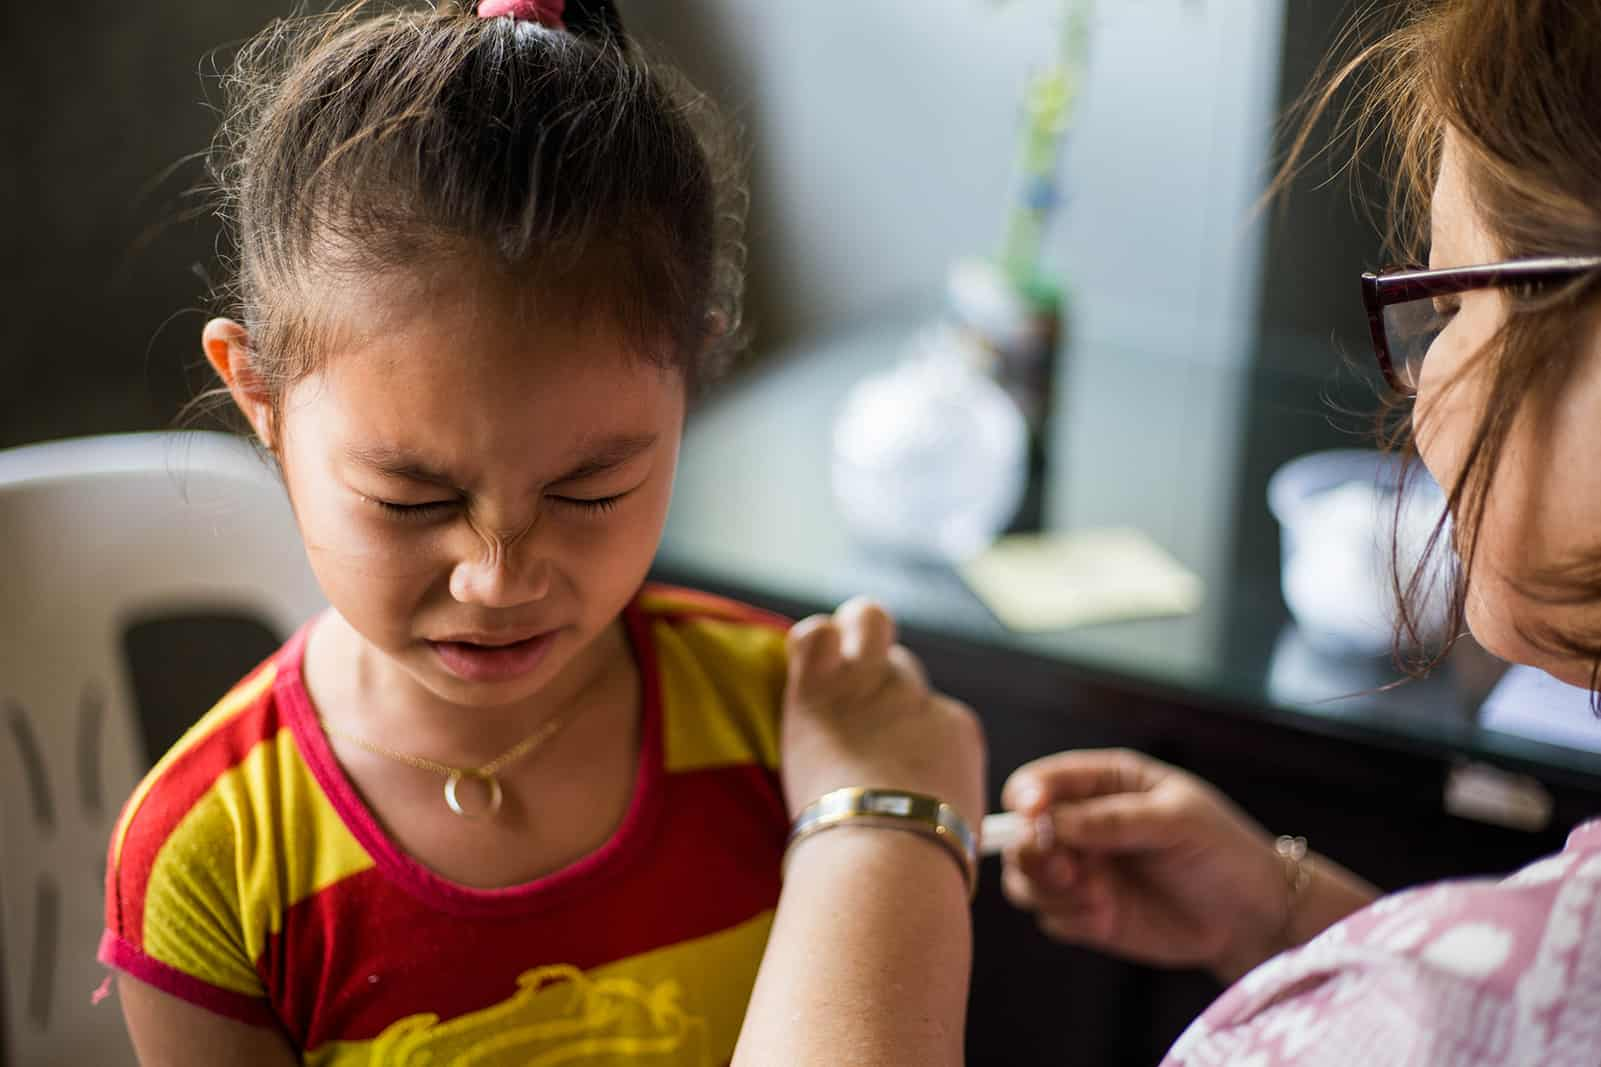 Girl wincing in pain while receiving a vaccination